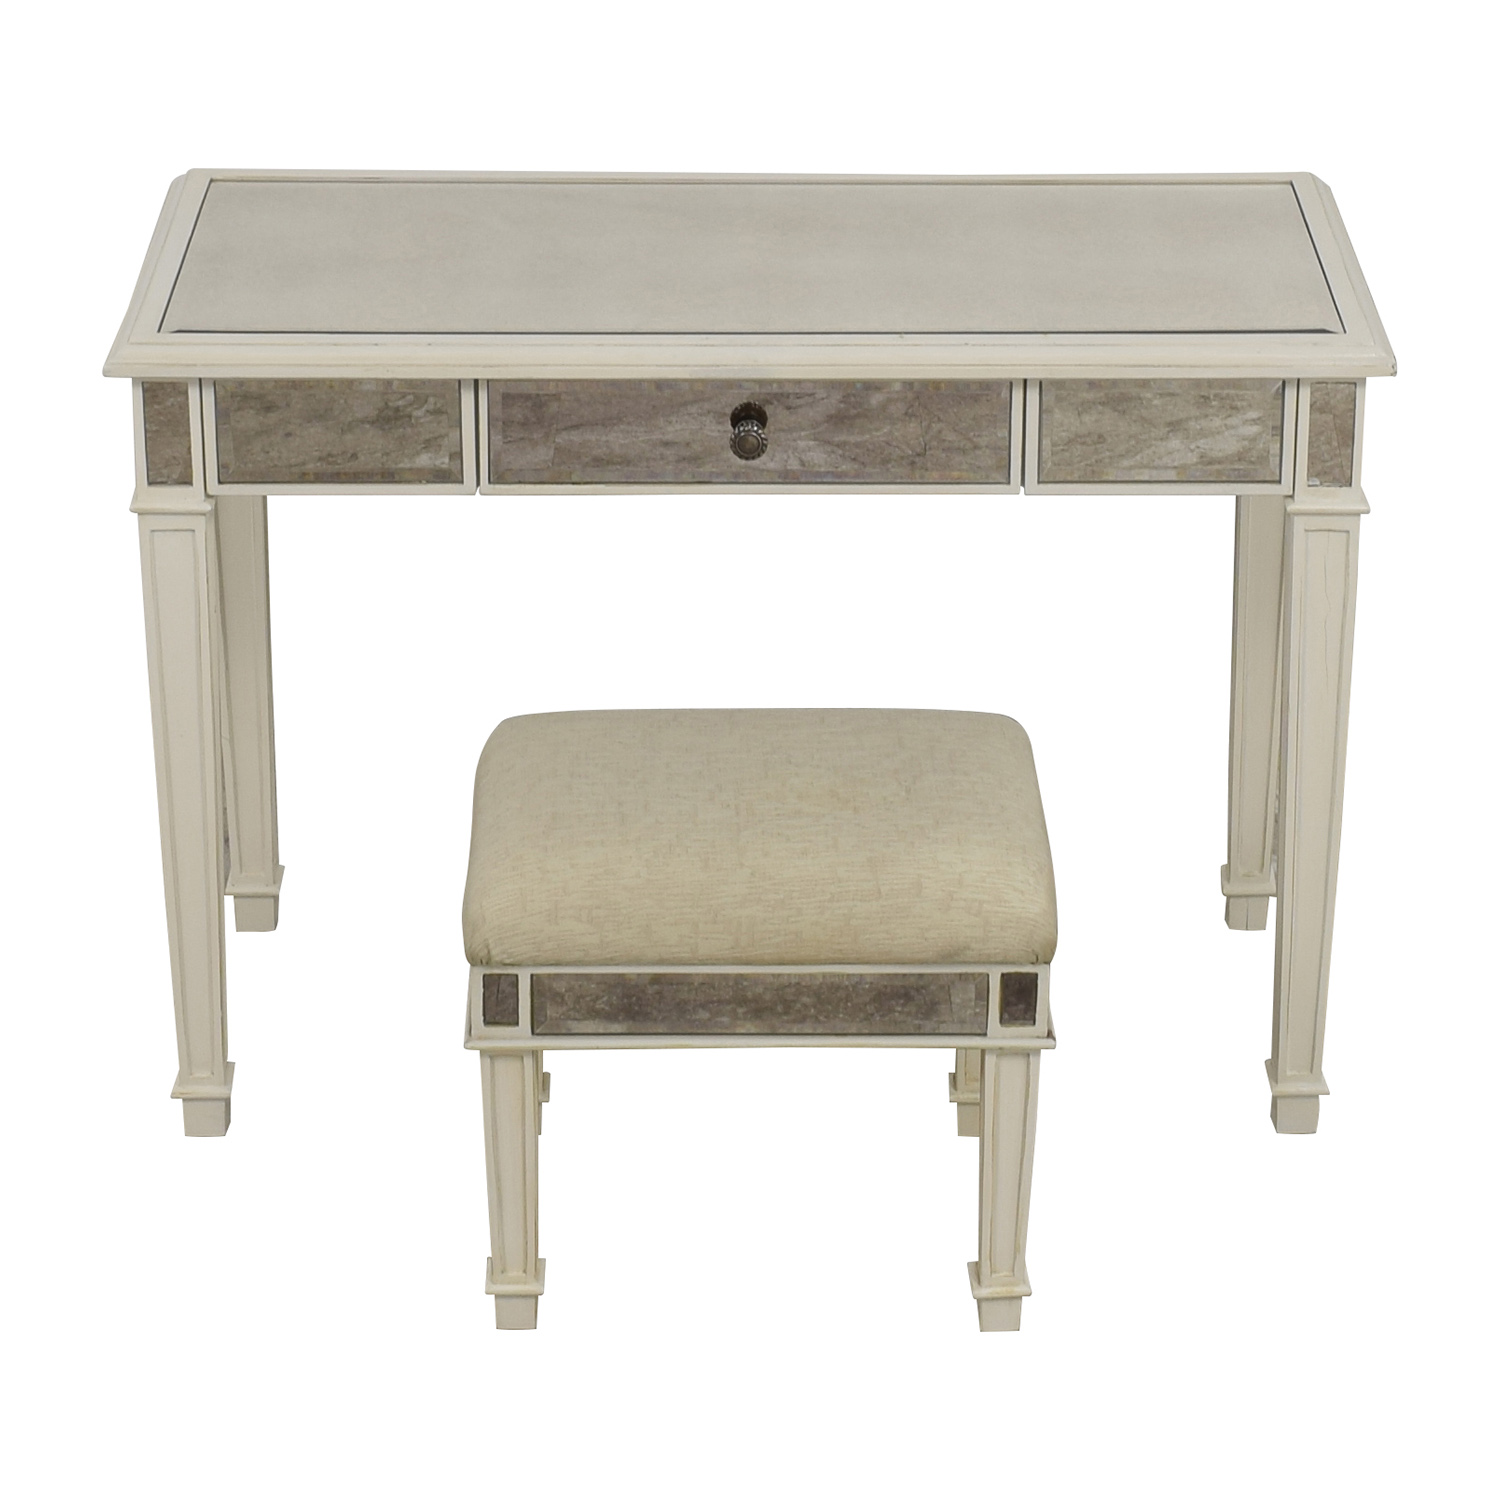 ... Pier 1 Imports Antique White Mirrored Vanity Table And Stool / Utility  Tables ...